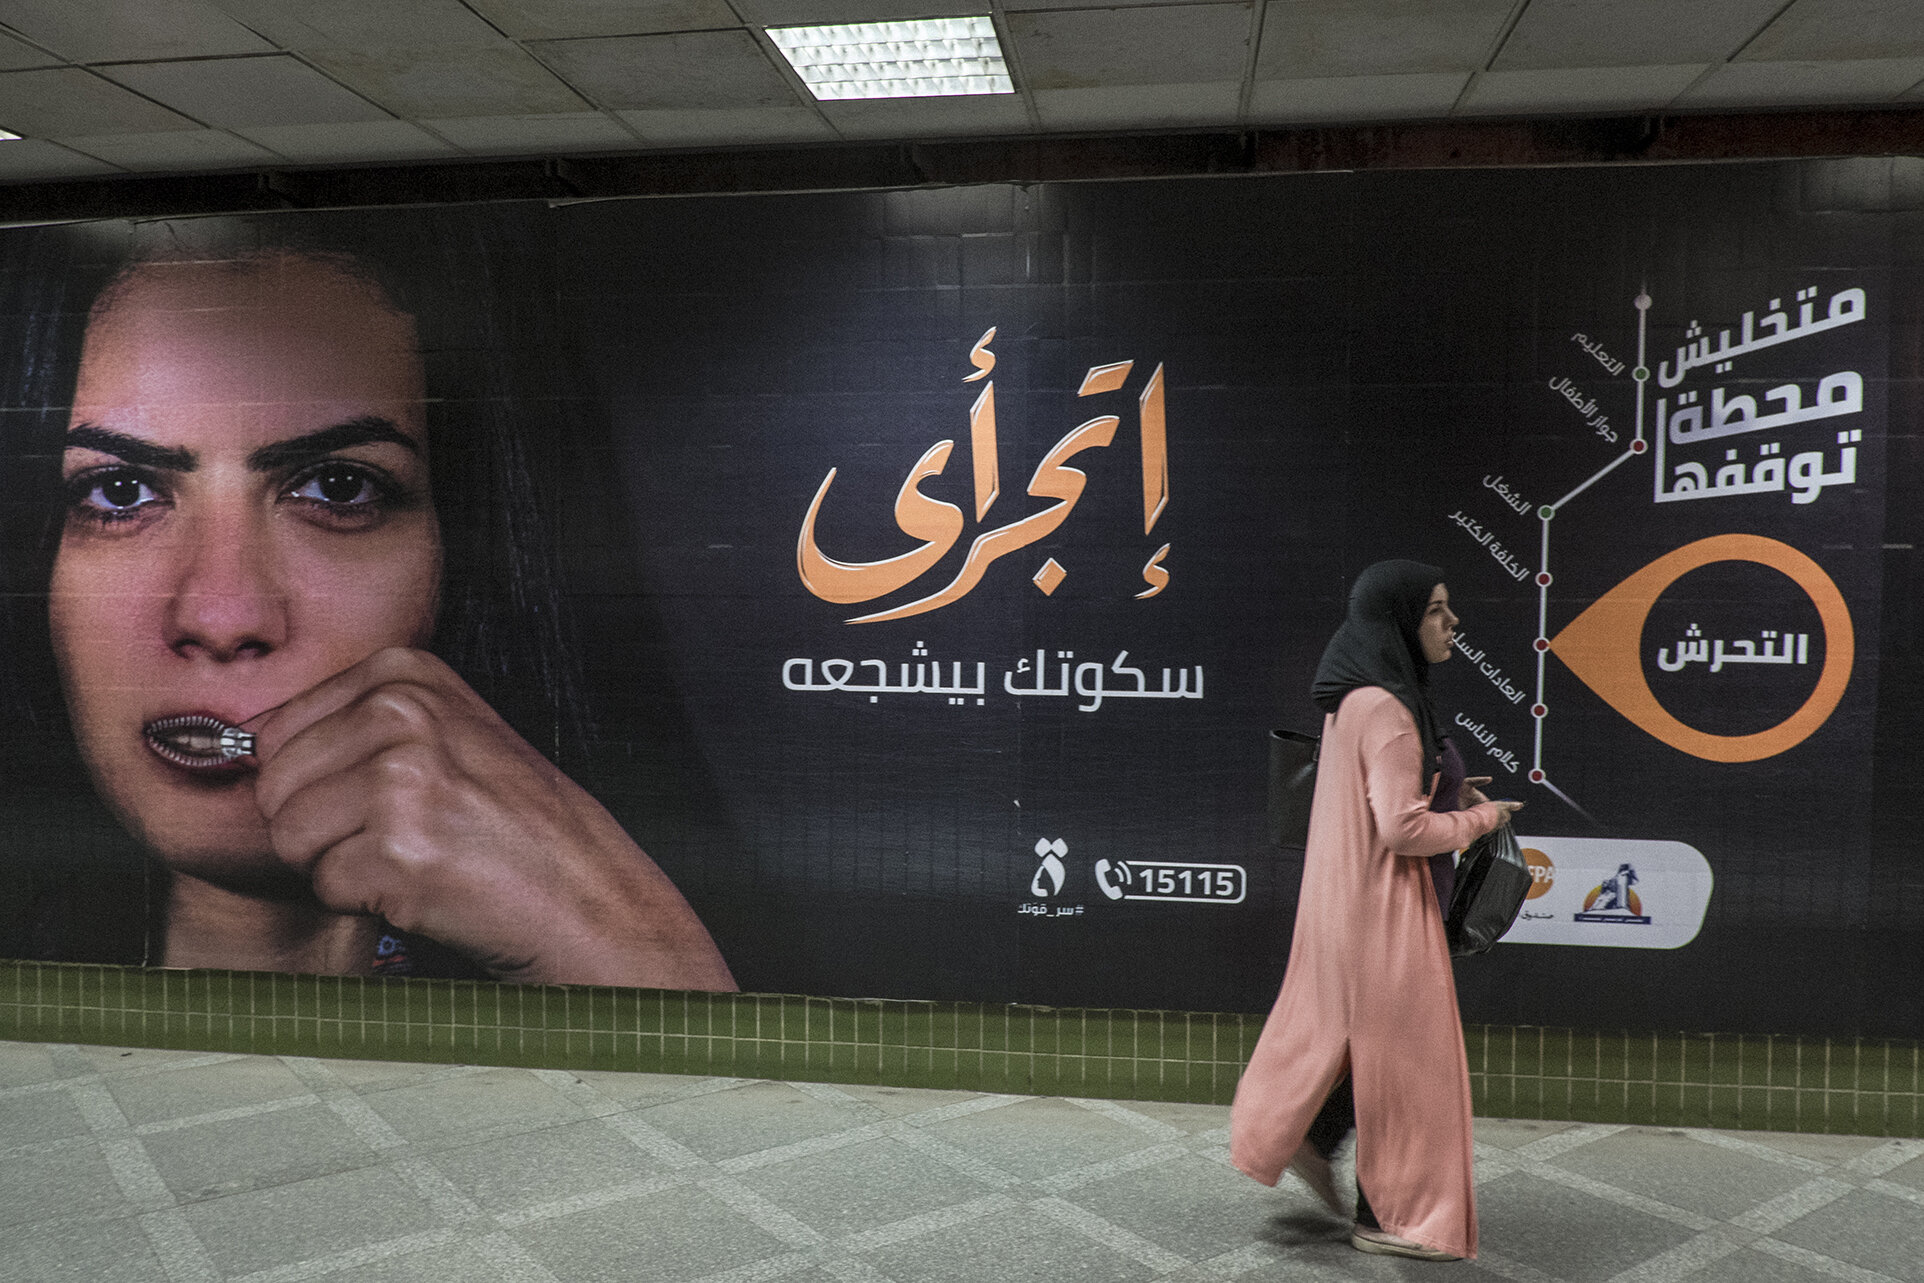 "The year 2017 was declared a ""Year of the Woman"" by the Egyptian president El-Sisi. In 2018 posters from a campaign against sexual harassment, financed by the Ministy of Health together with the UNFPA organisation are visible in the main Cairo metro stations.The poster lists lack of education, underage marriage, work, too many children, harassment, negative habits and people's opinions as the main obstacles for women gender equality in Egypt. November 2018, Cairo, Egypt"